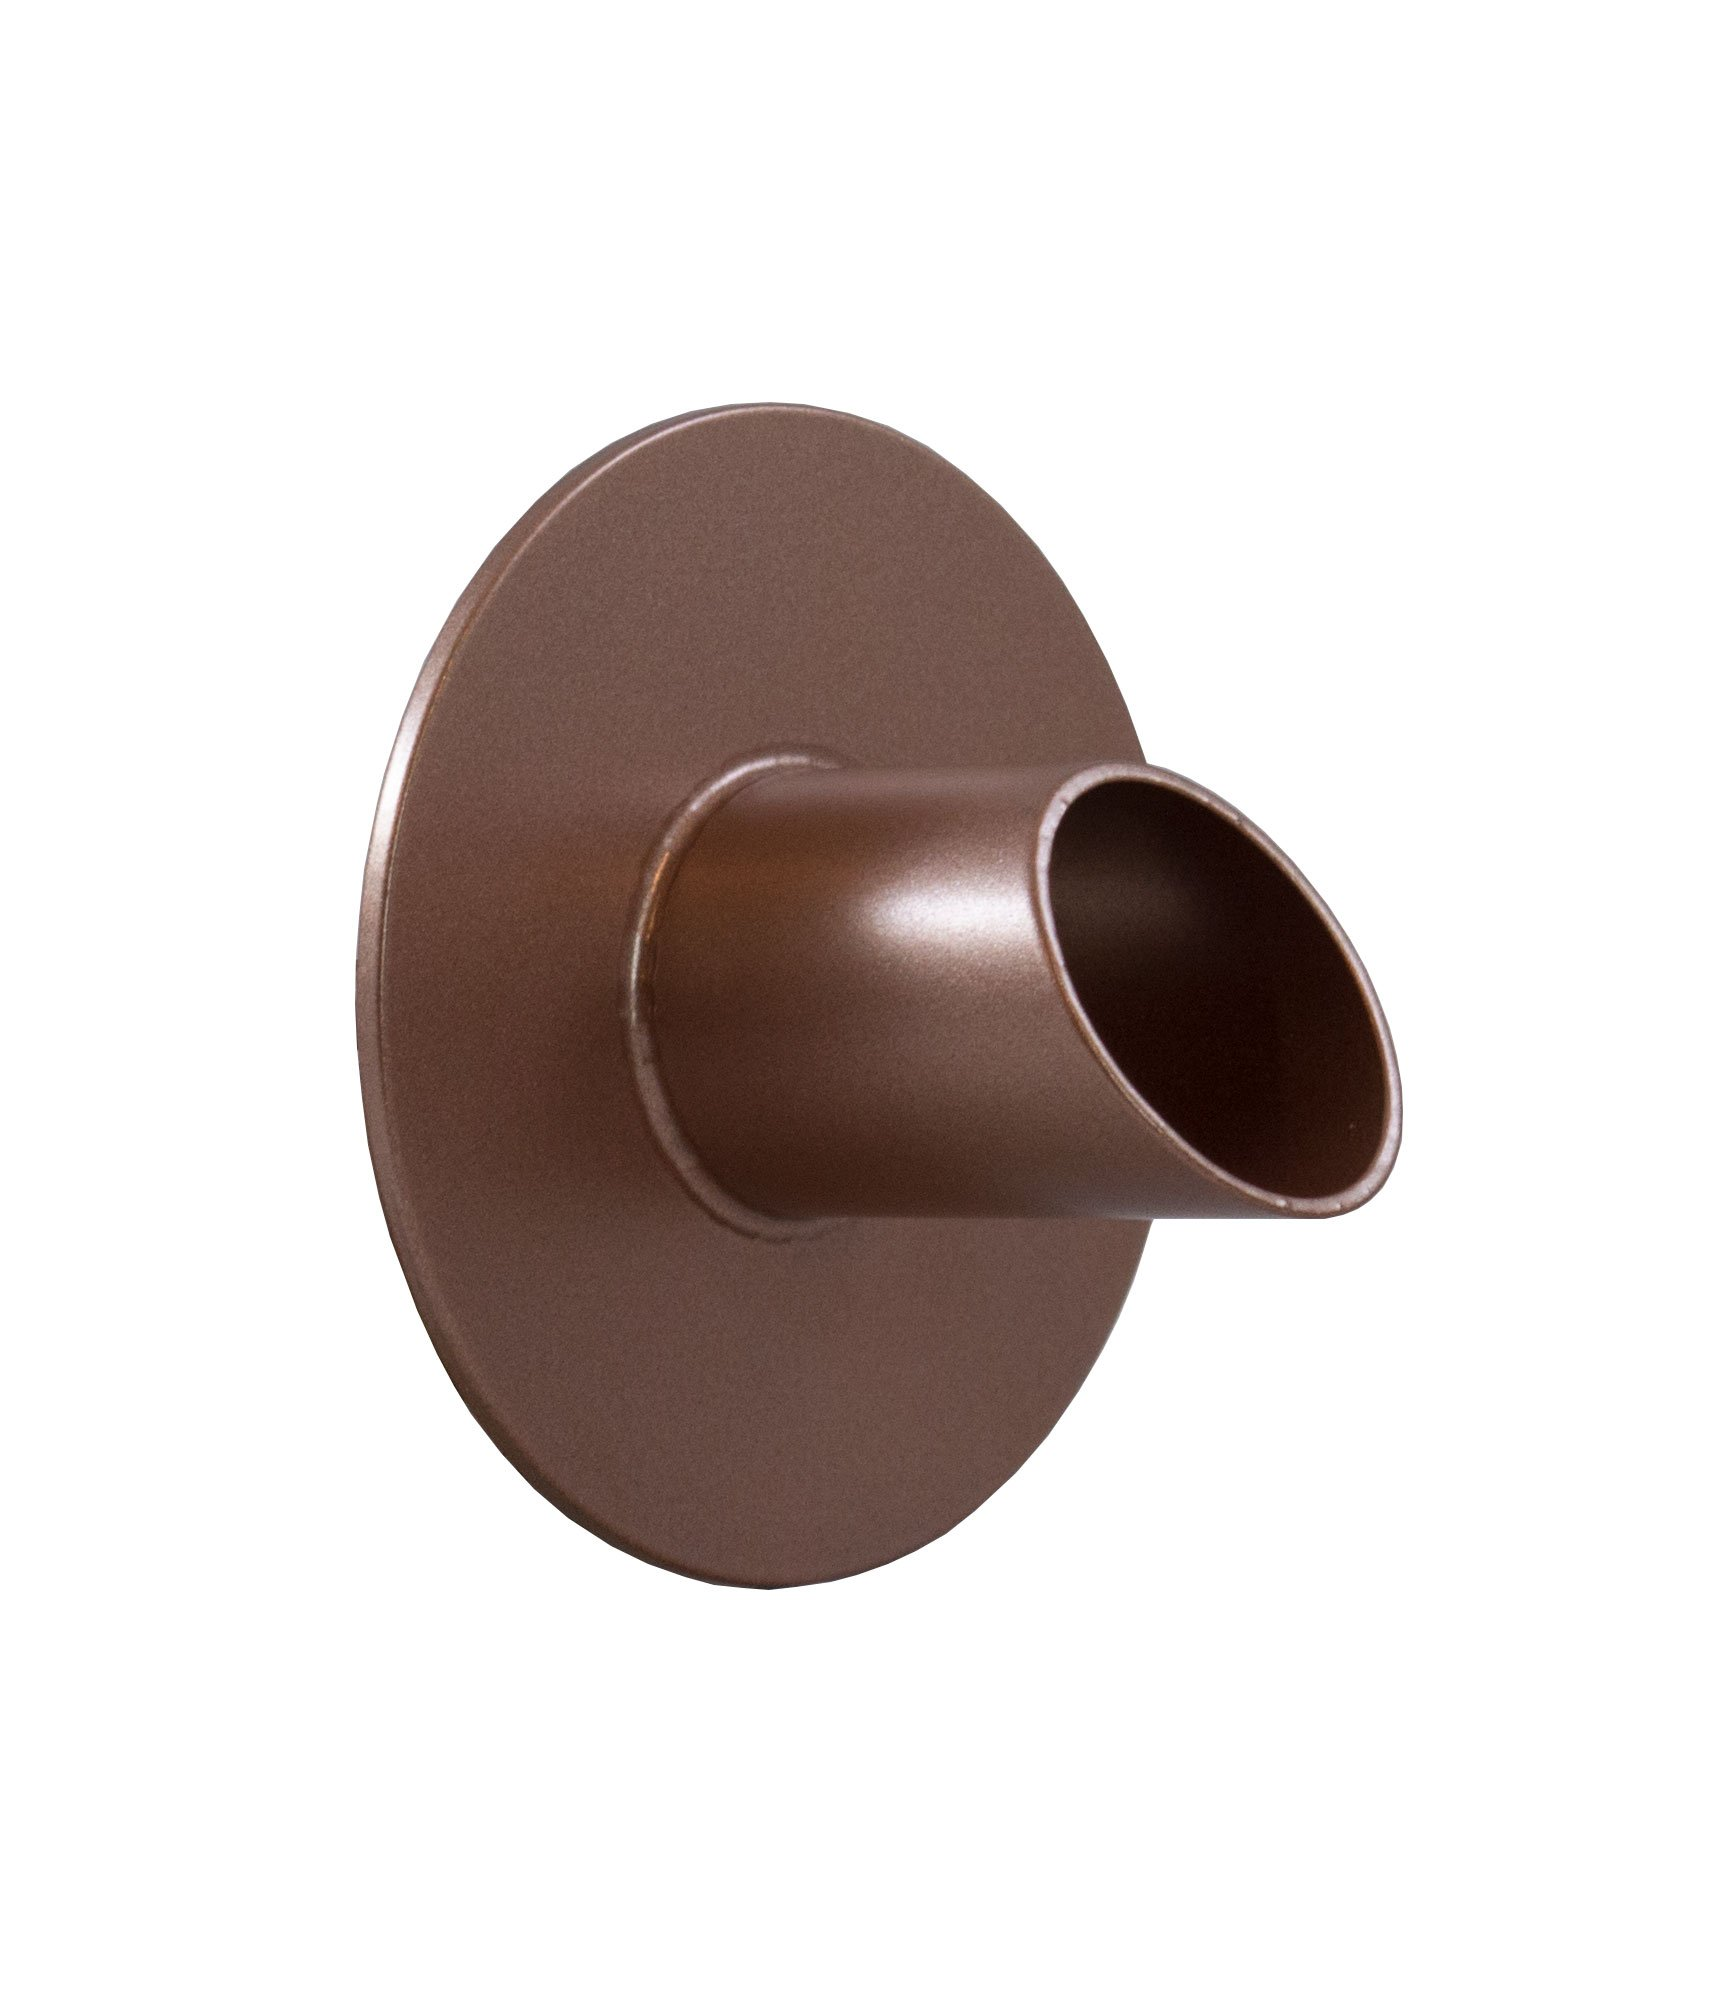 Majestic Water Spouts Waverly 1.5'' Round Water Fountain Spout Scupper Spillway Emitter for Pool, Pond, Water Feature, Etc - Copper